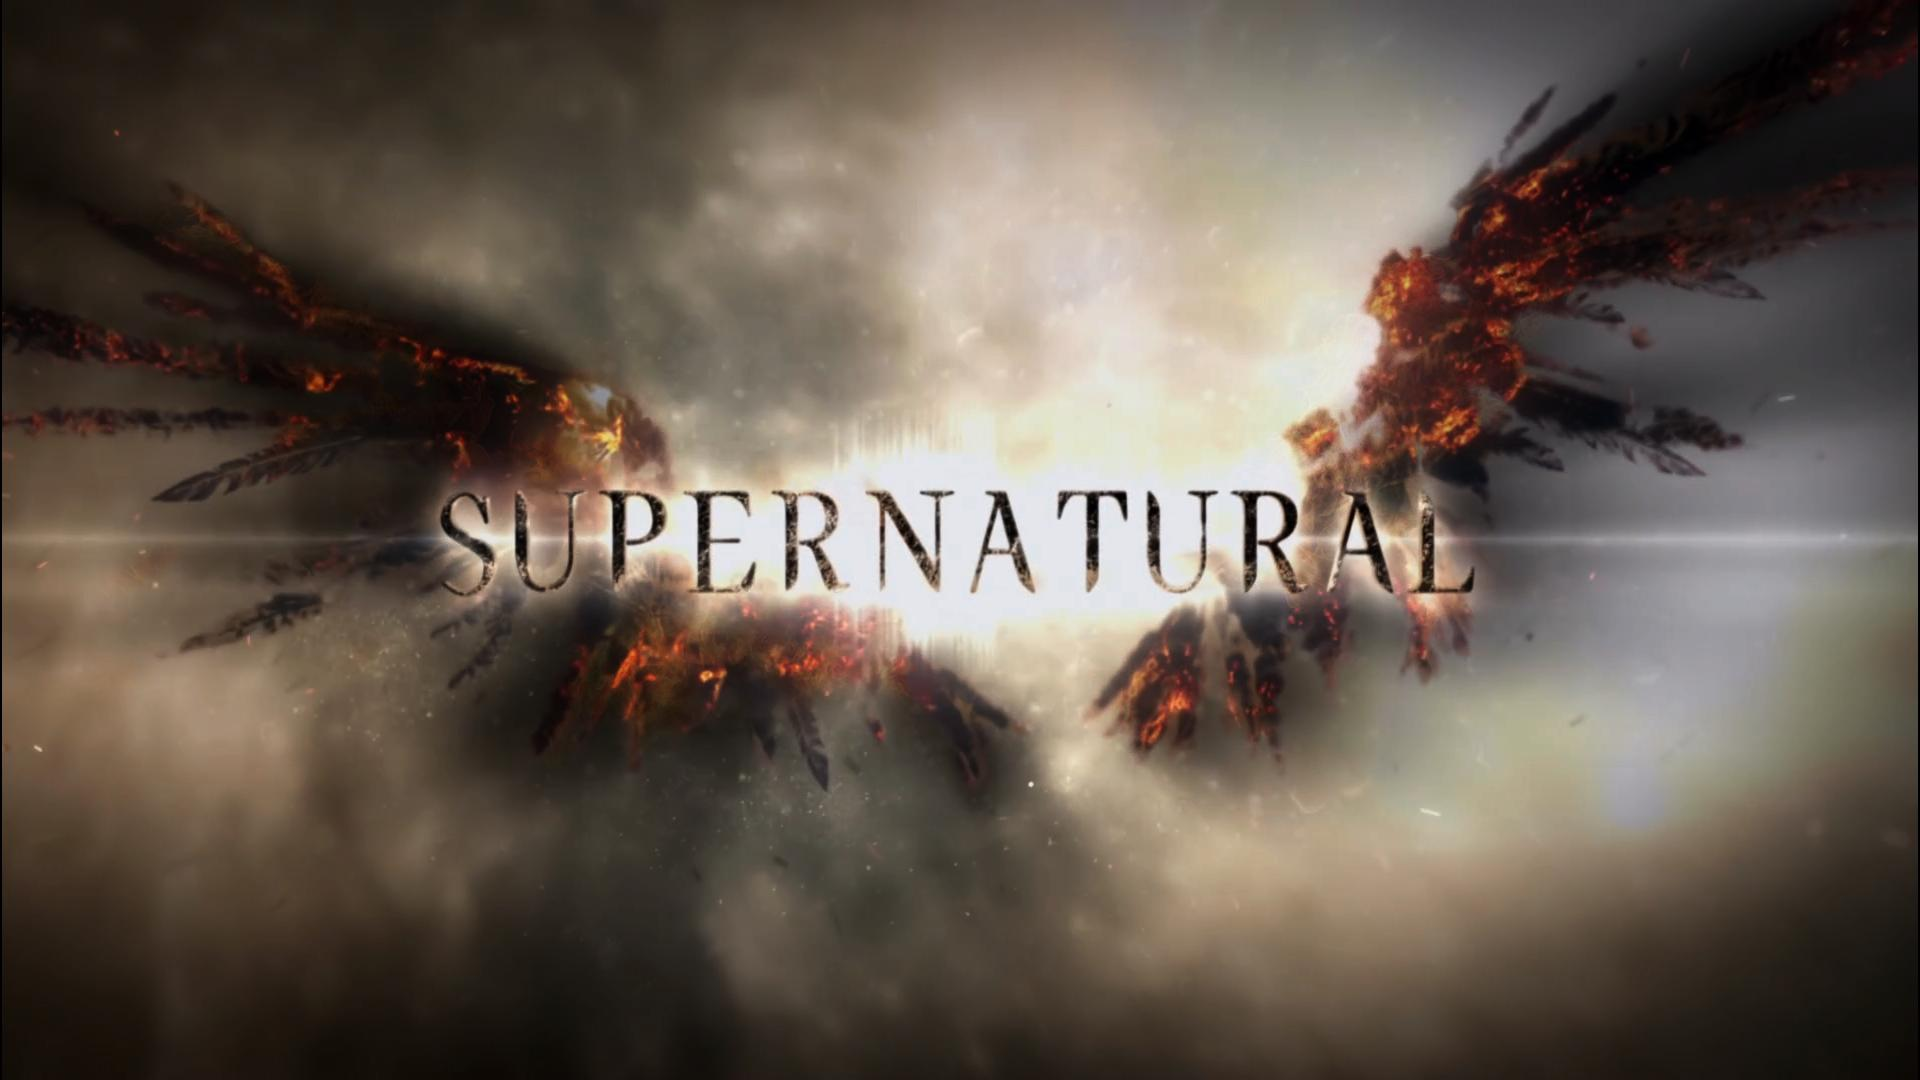 Supernatural Season 5 Wallpapers 1920x1080